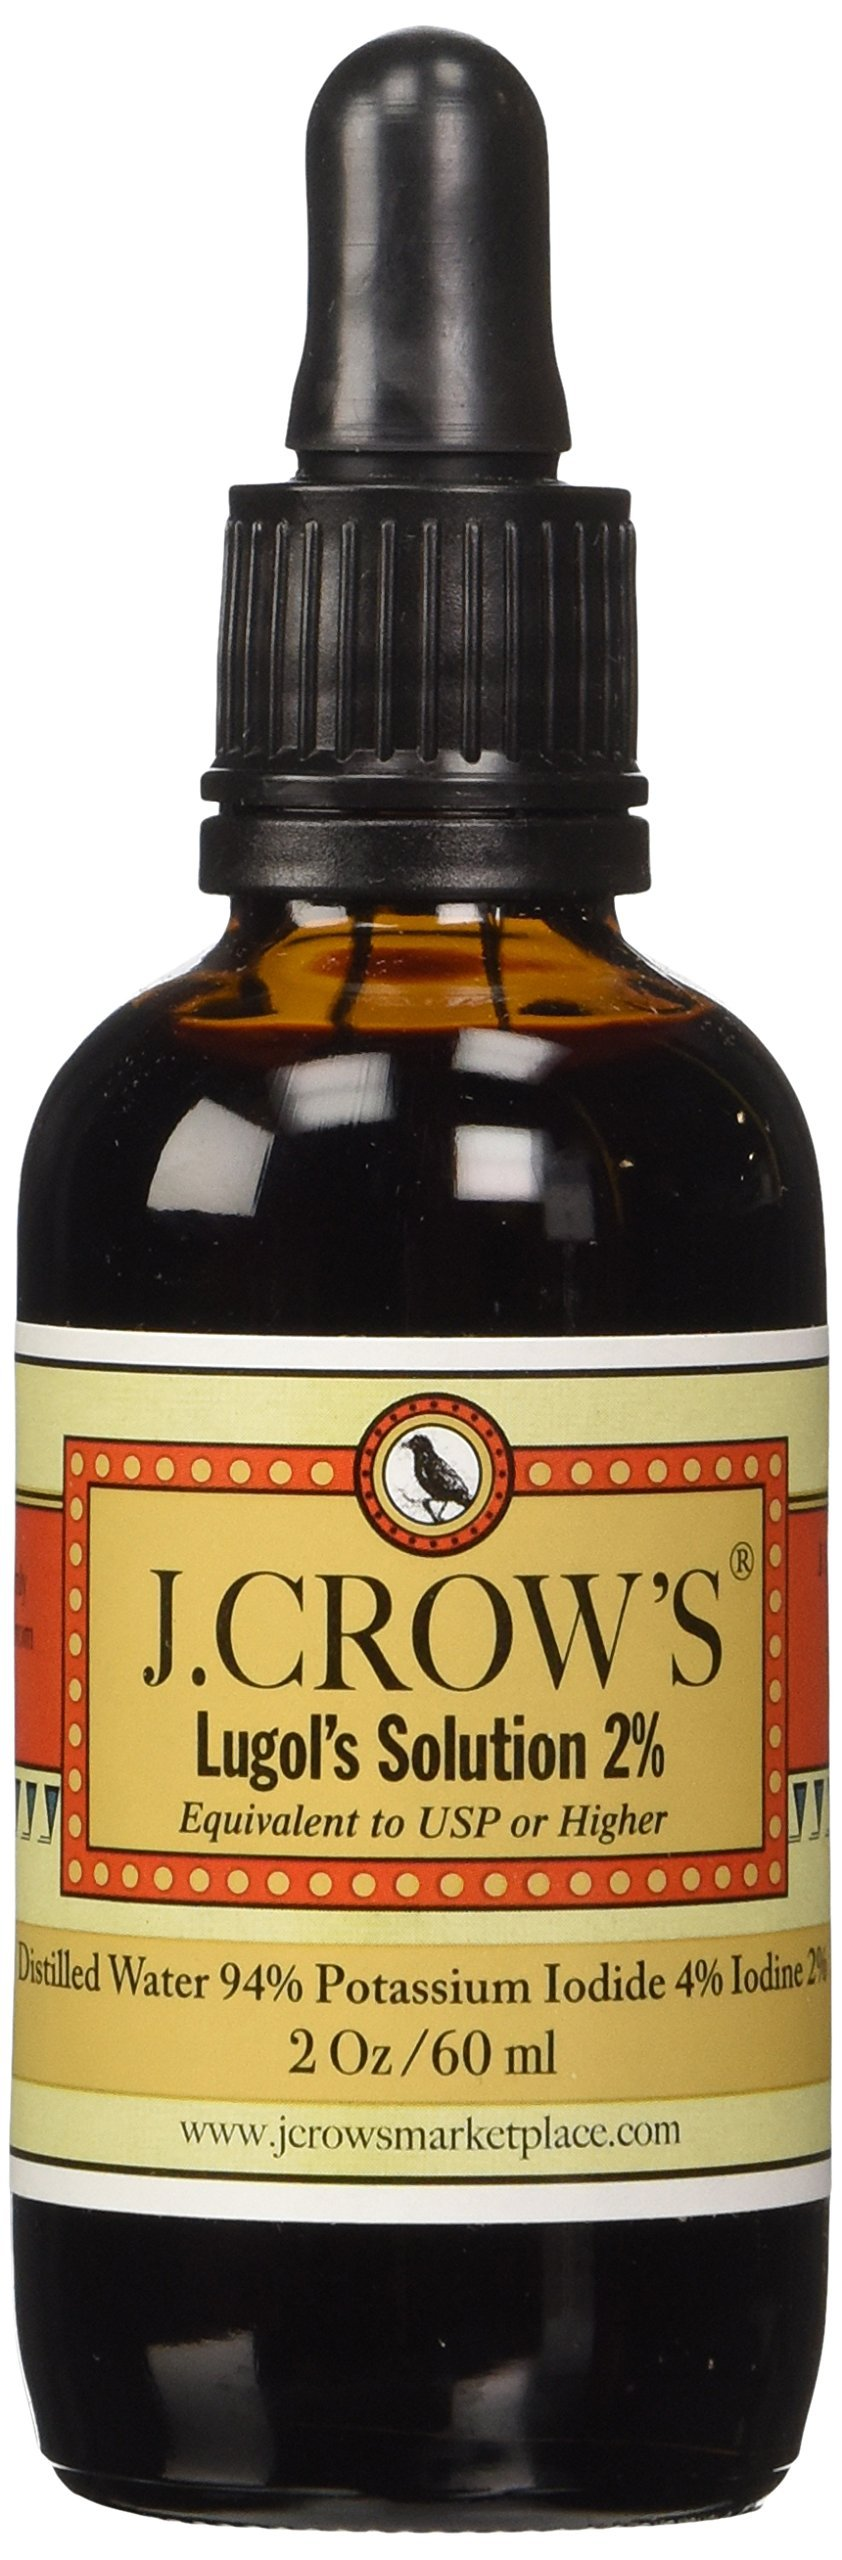 J.Crow's Lugol's Iodine Solution 2 Oz. Twin Pack (2 Bot.) 2 Bottles 6